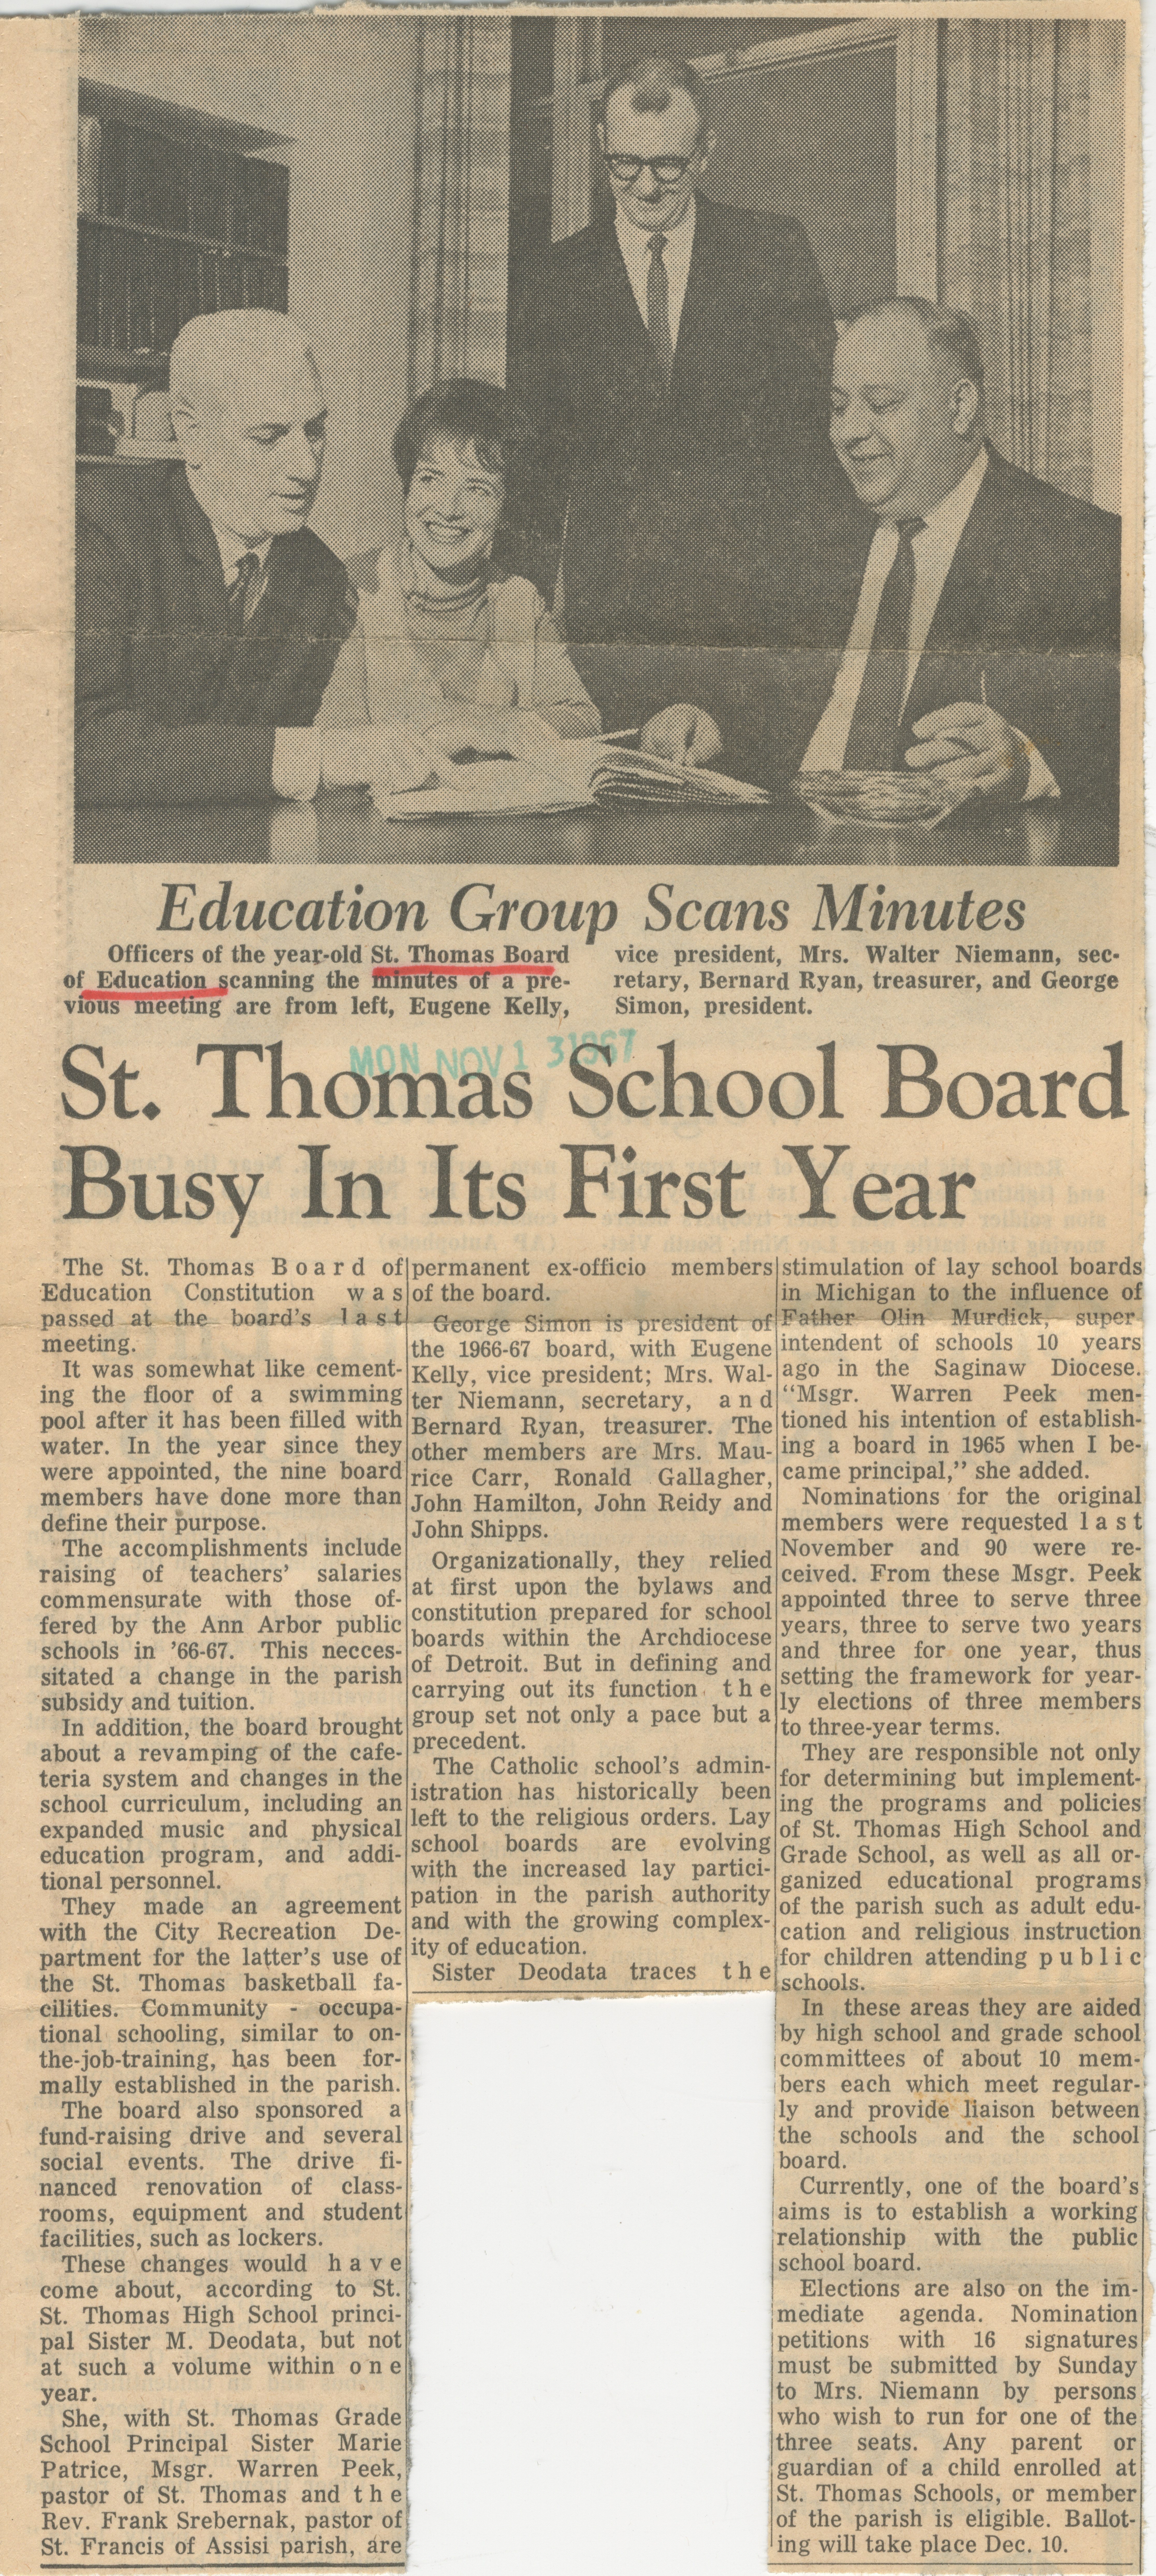 St Thomas School Board Busy In Its First Year image